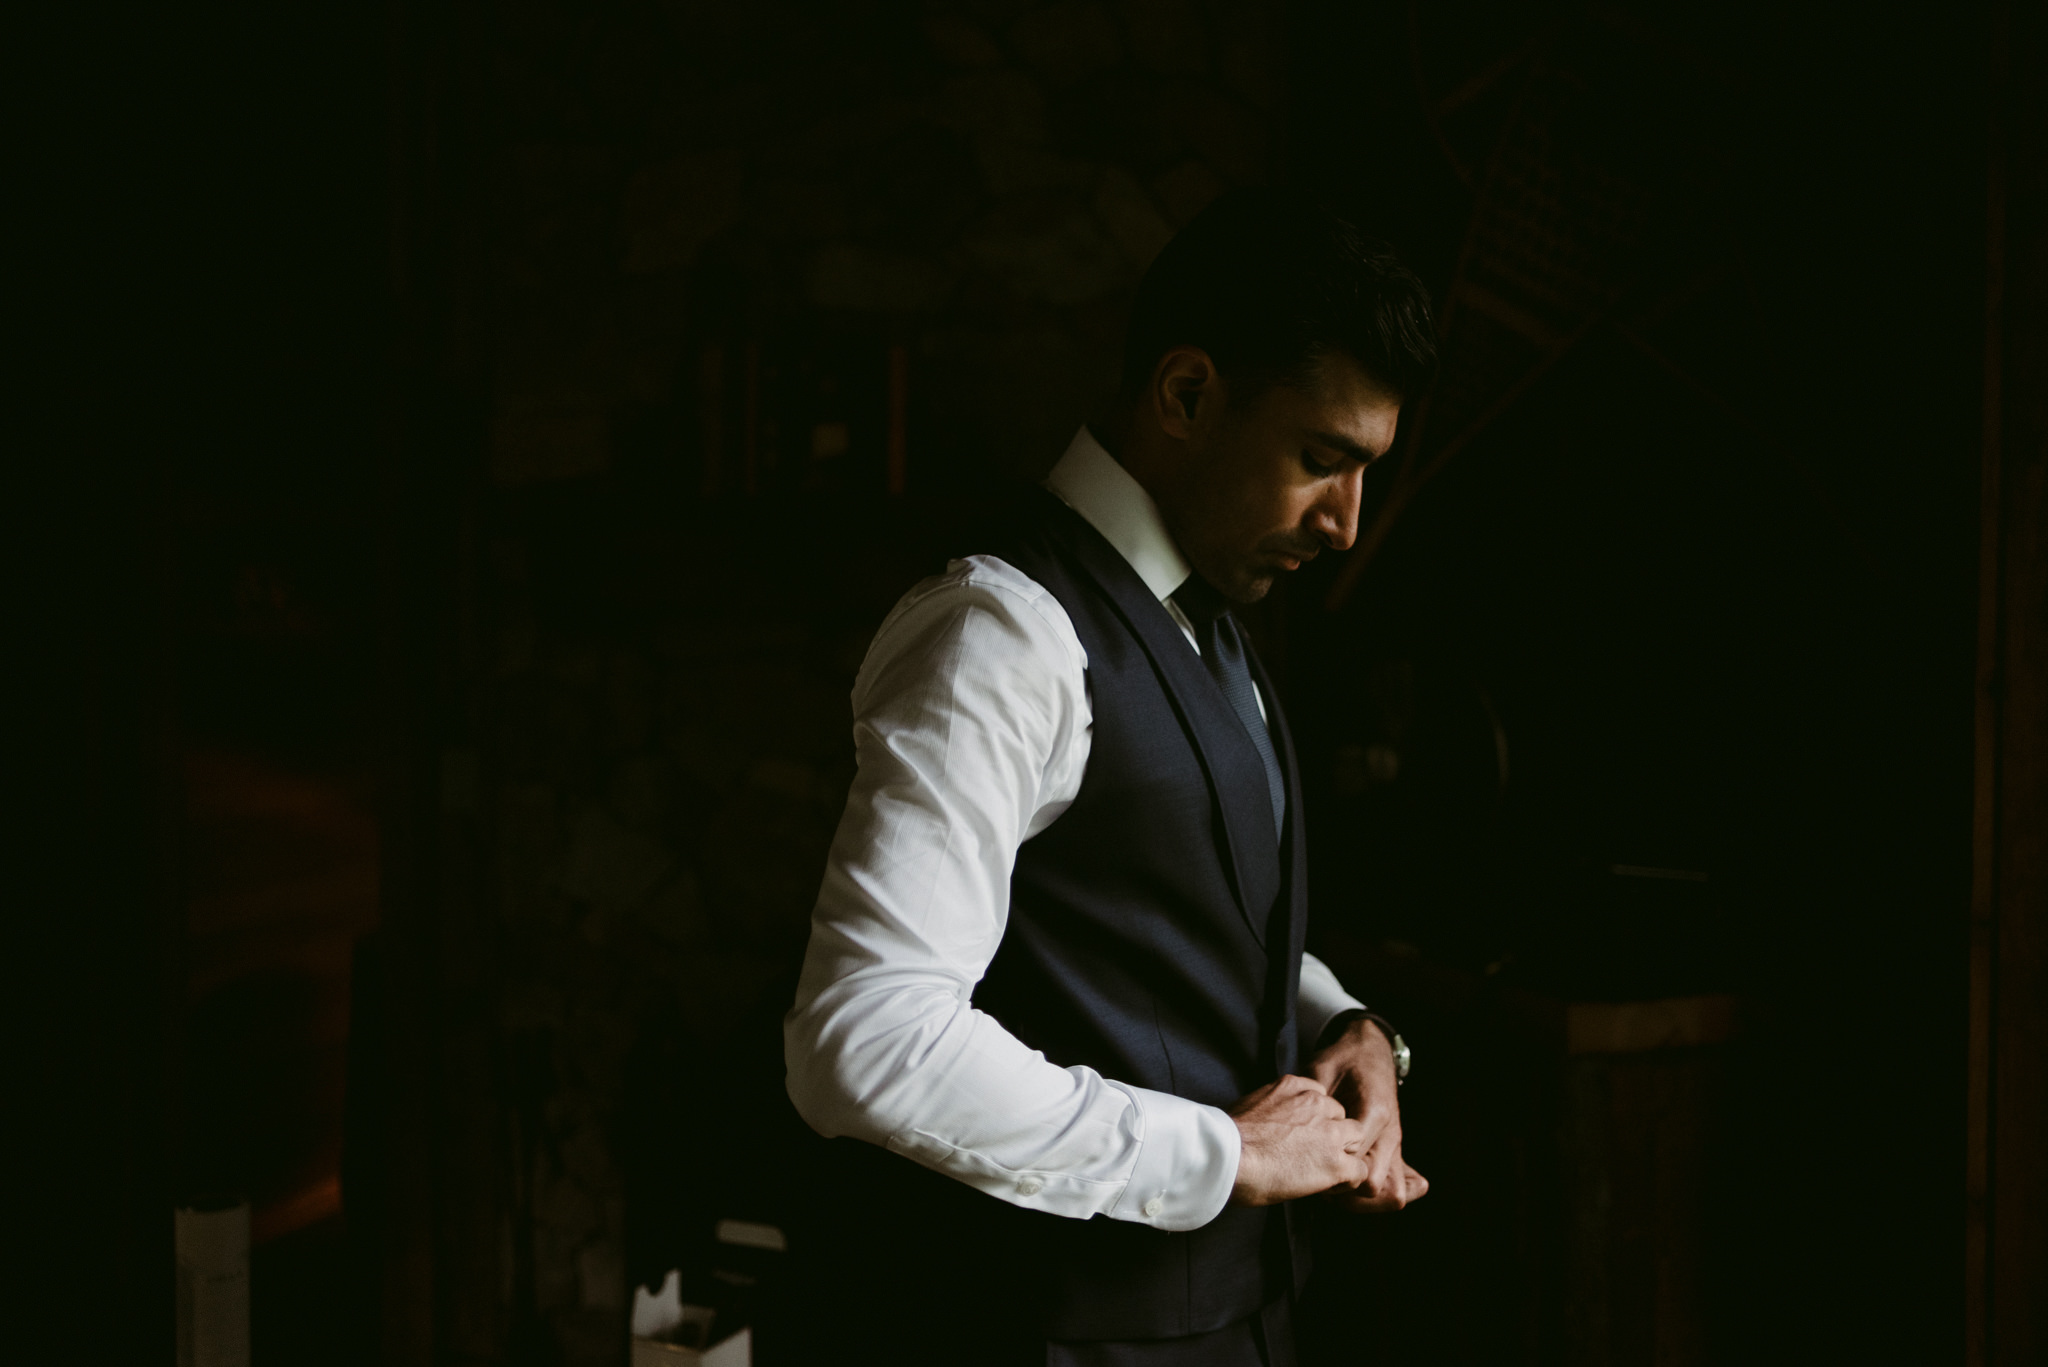 groom getting dressed and buttoning up vest in dark cottage